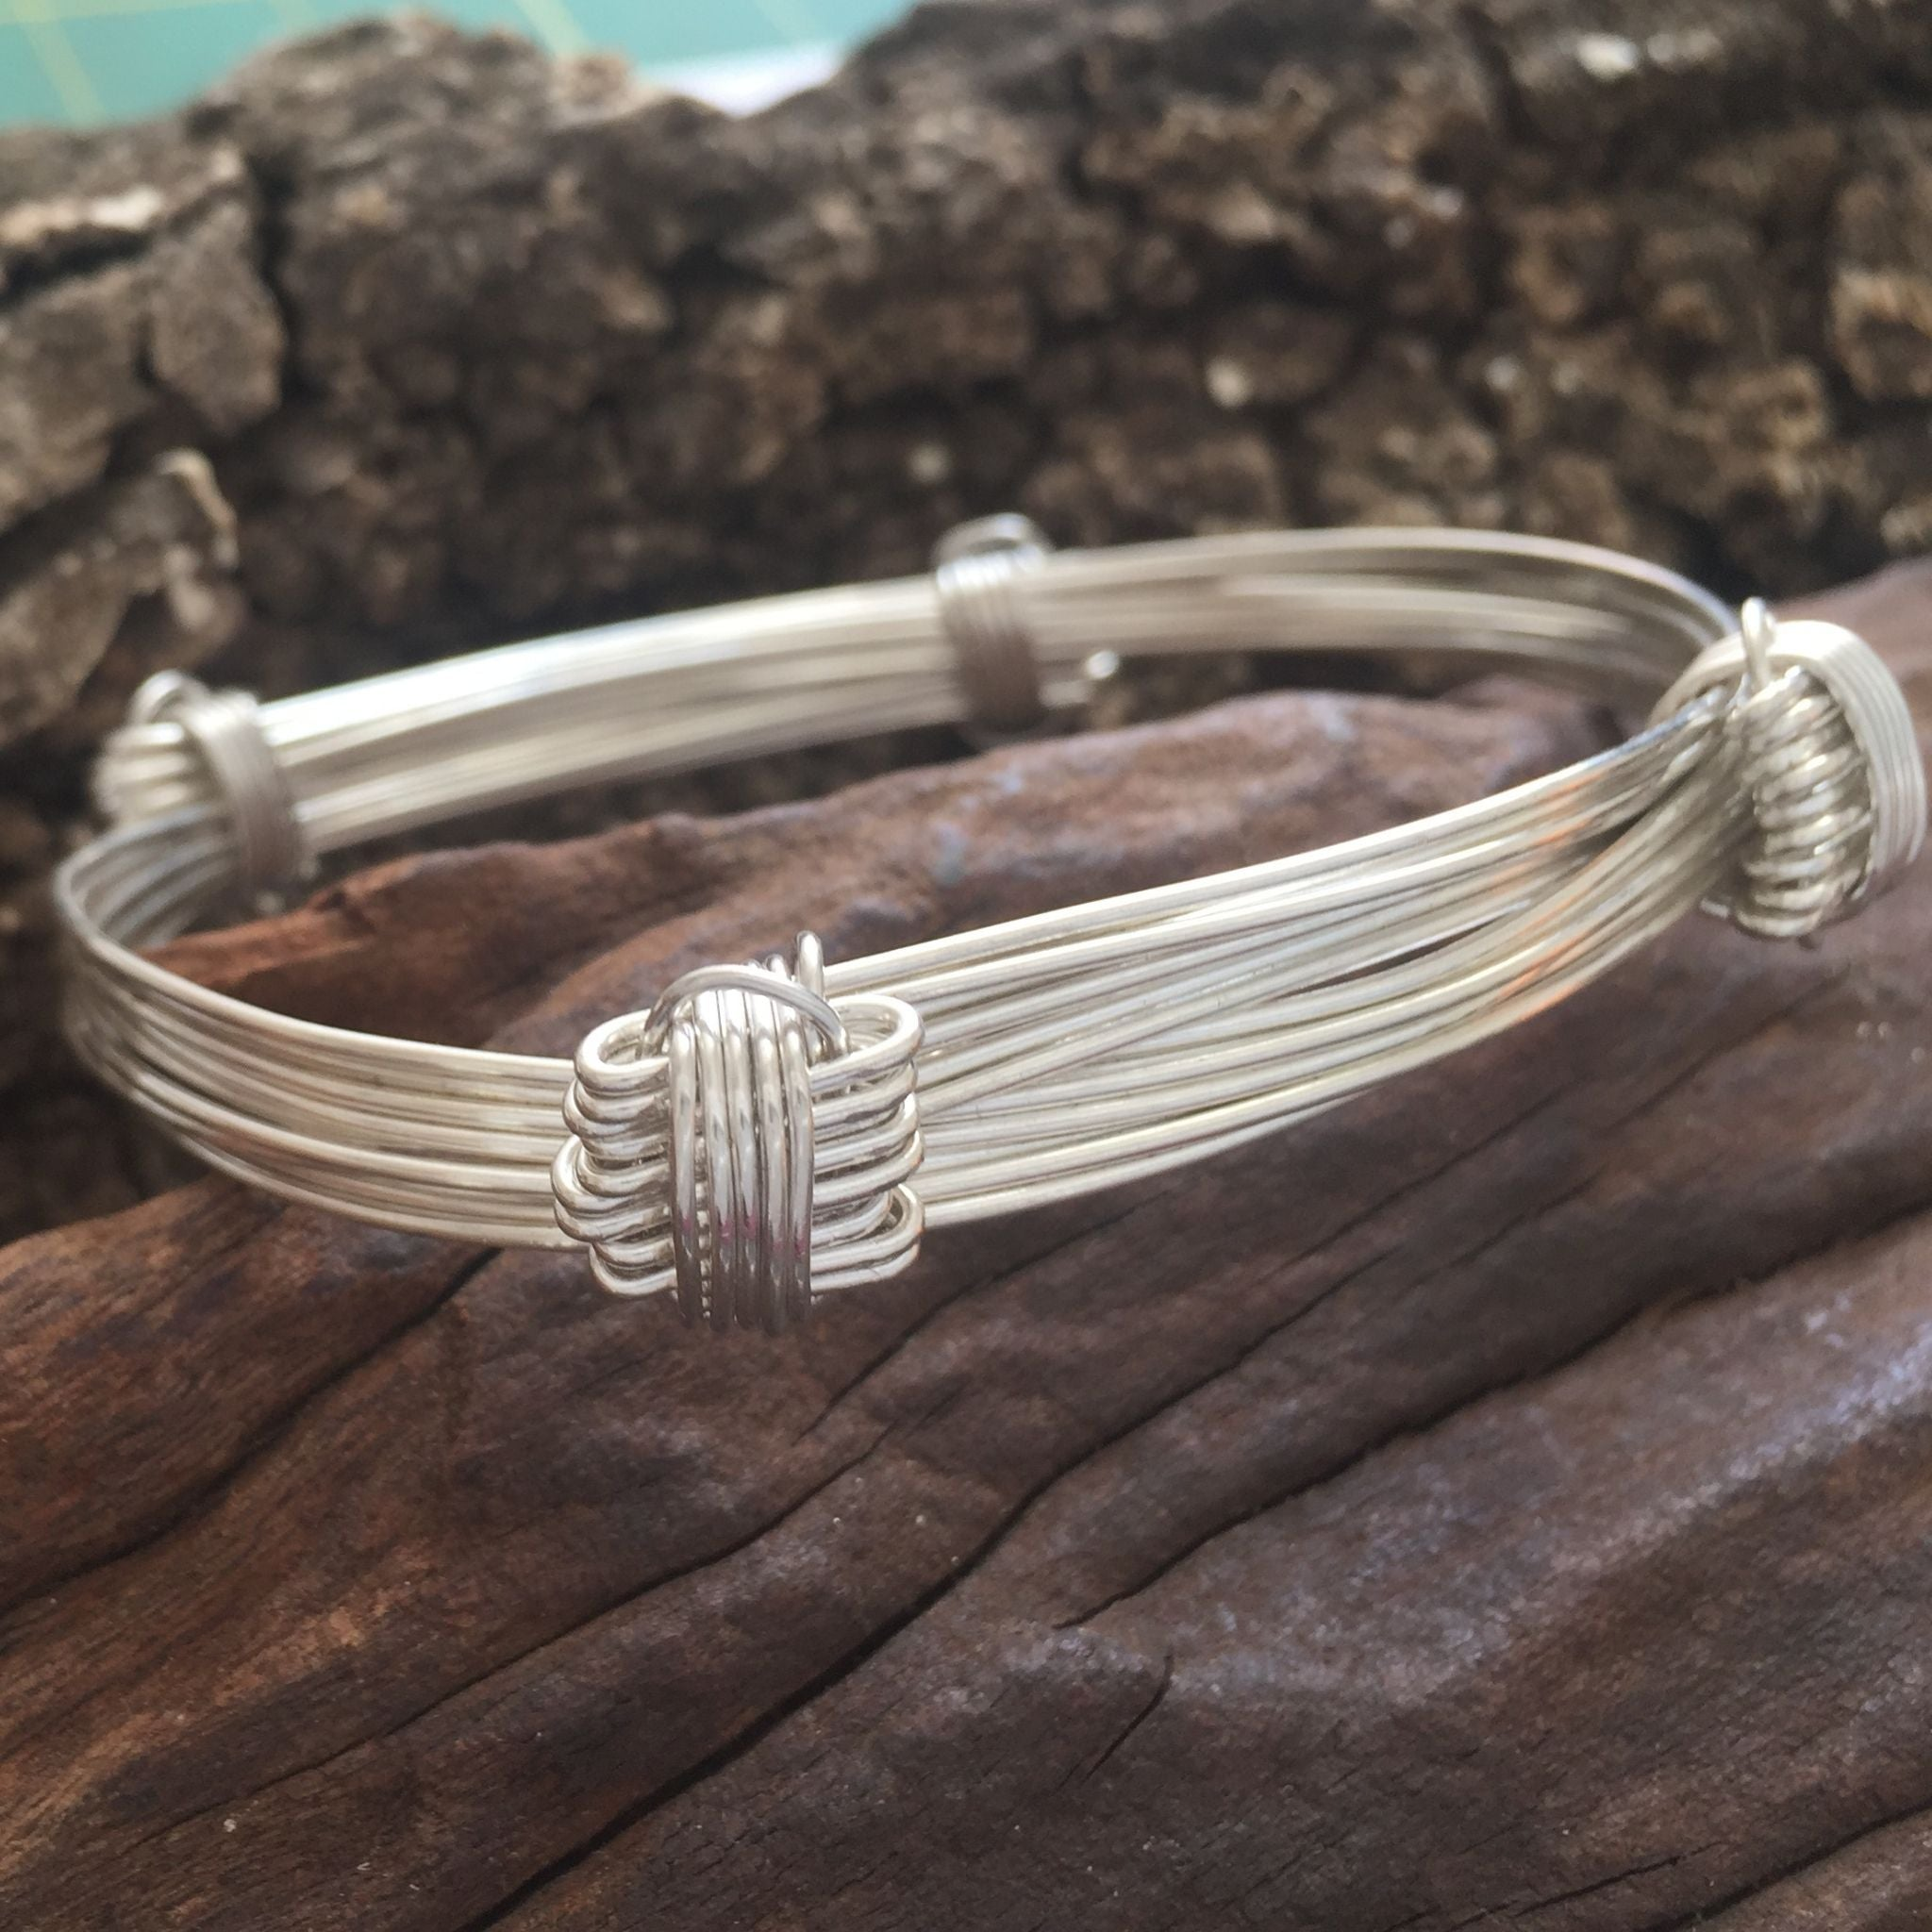 7 Strand Elephant Hair Knot Bangle in Sterling Silver w/ Story Card